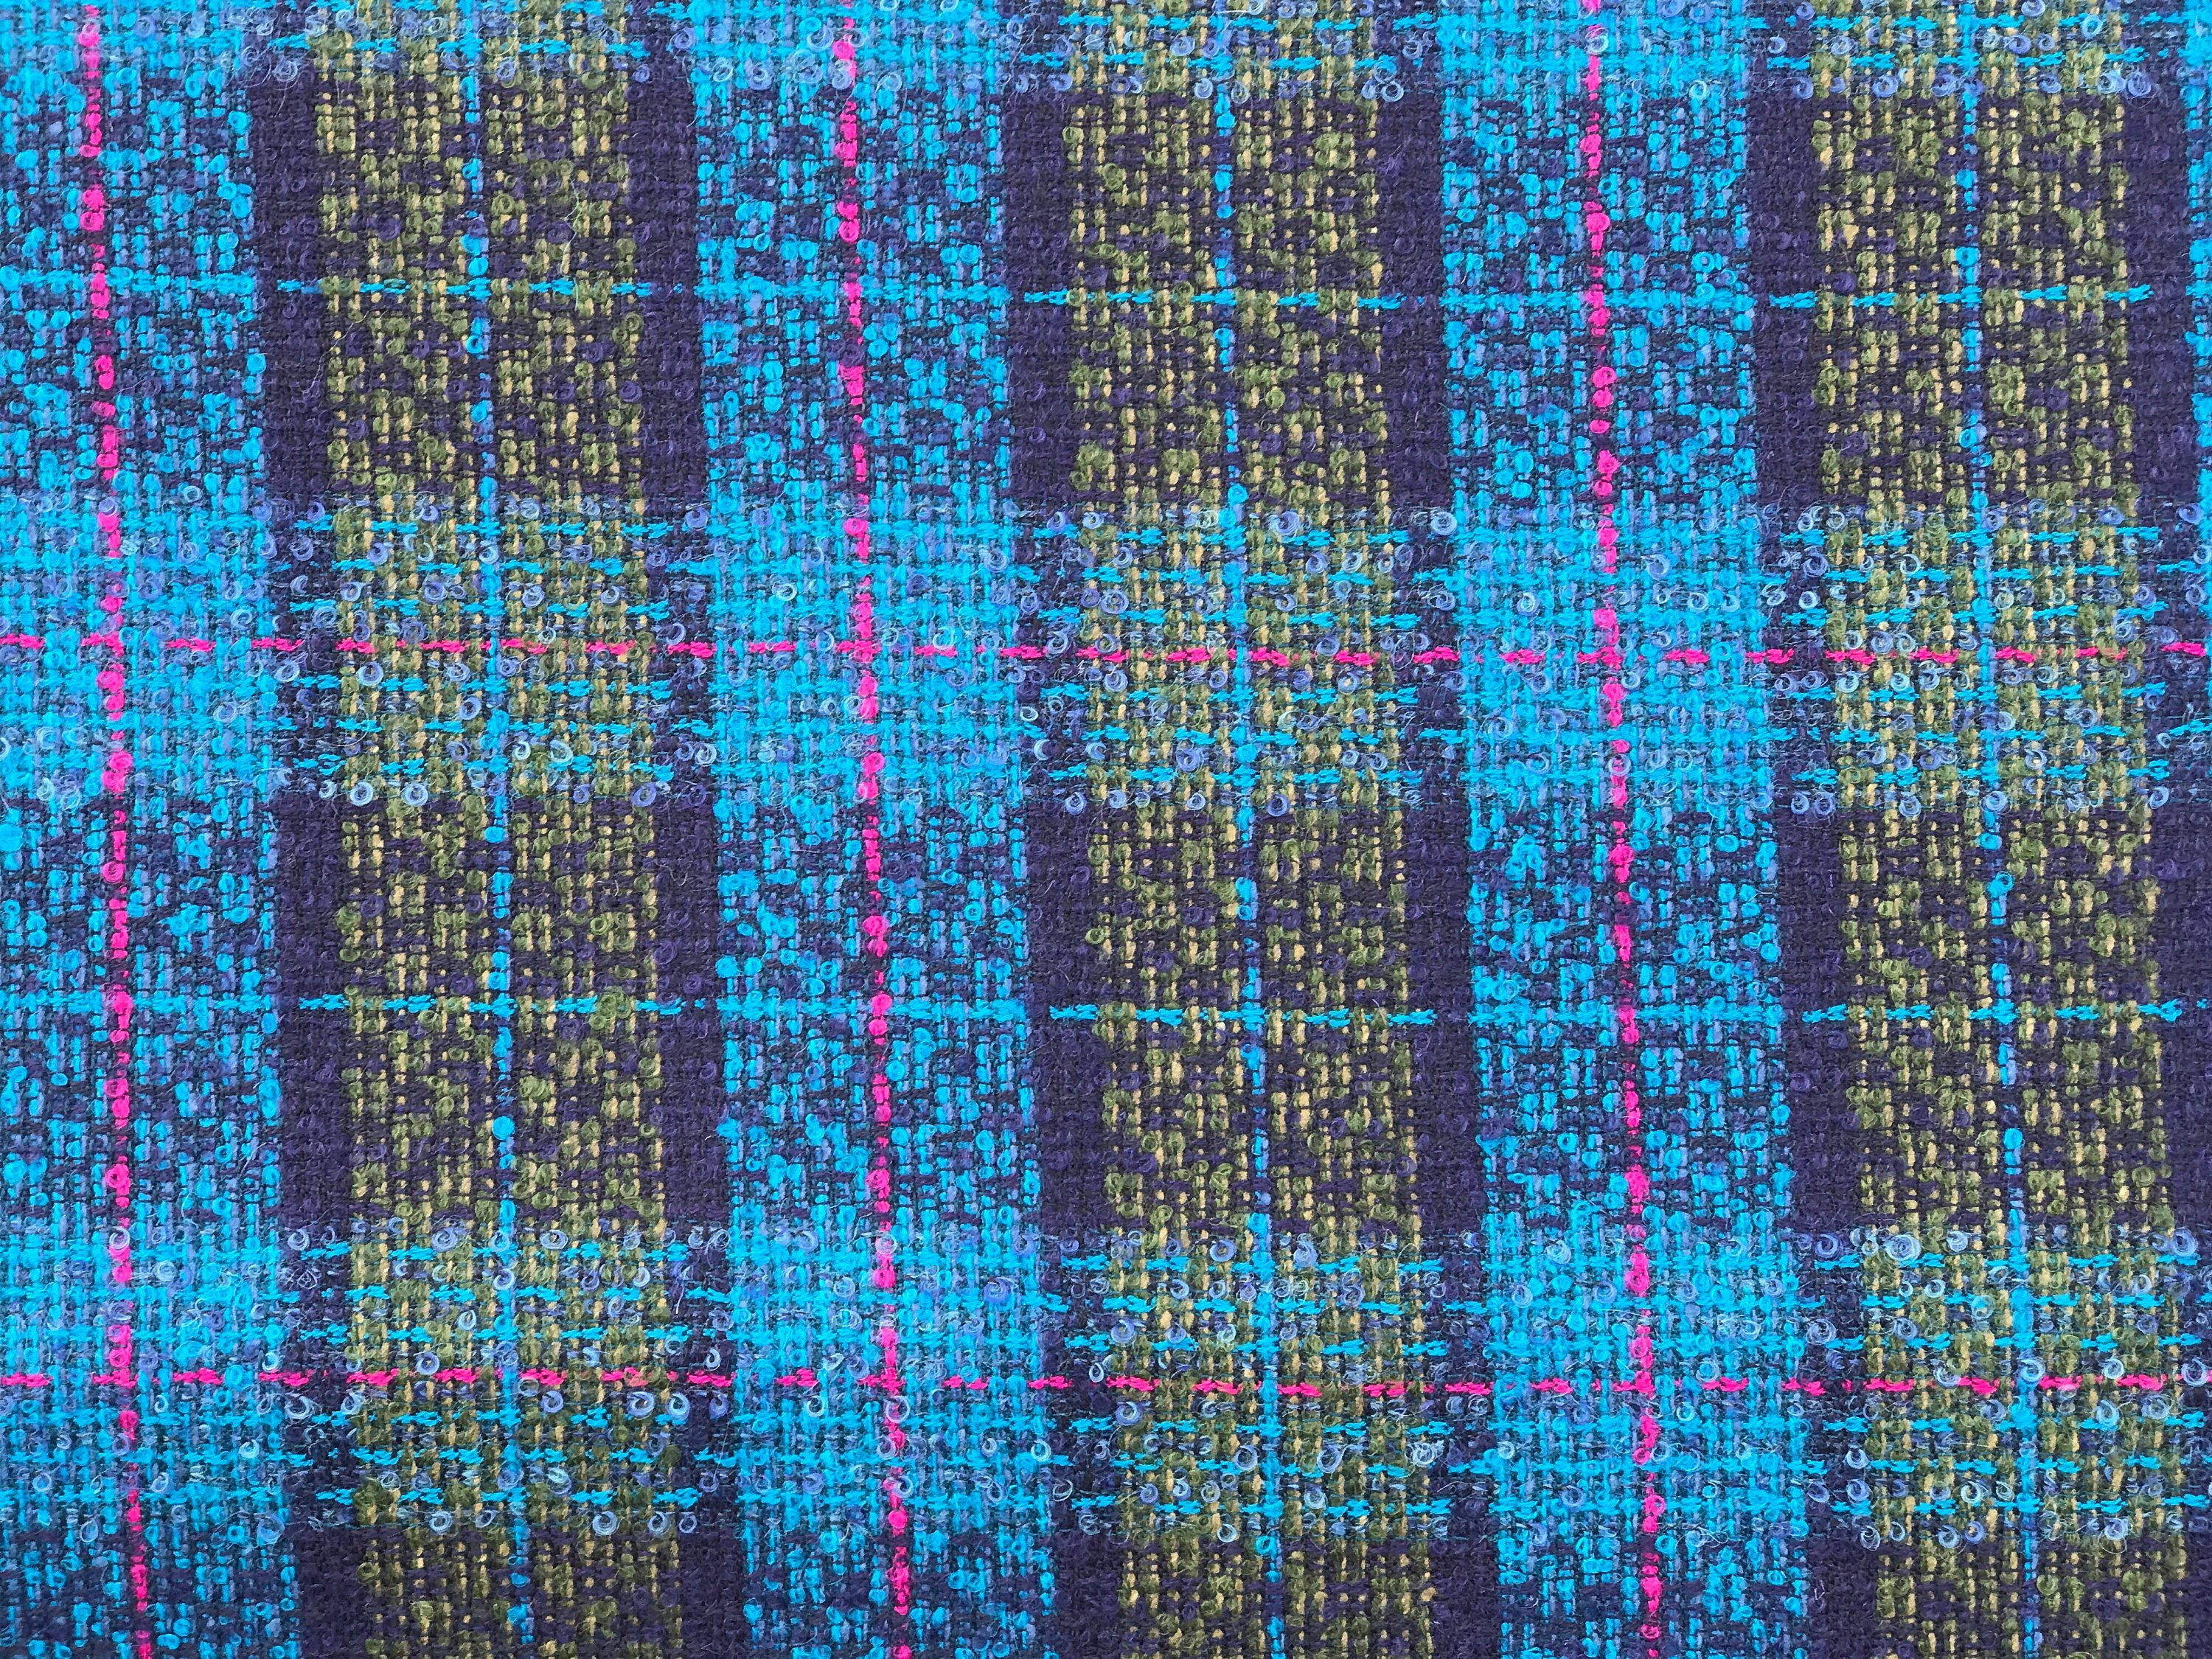 Teal blue boucle tweed fancy wool check fabric pure wool high end suiting coat 150cm wide